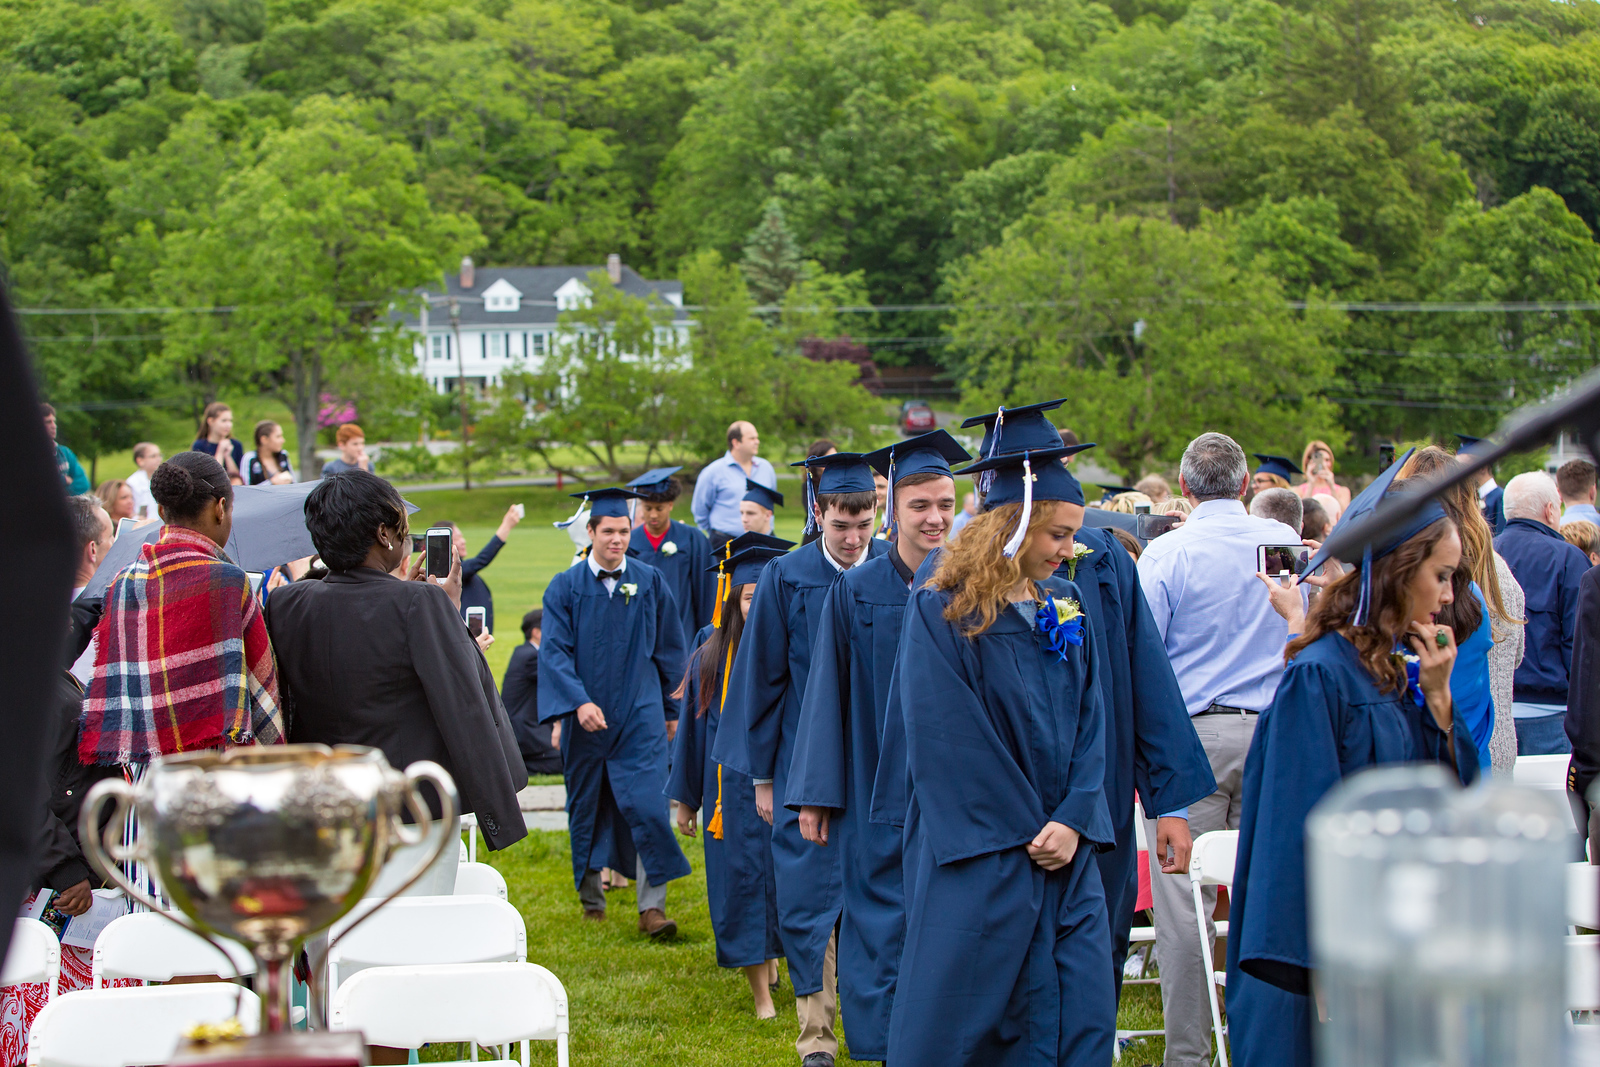 Seniors entering the graduation venue with Spy Rock House in the background